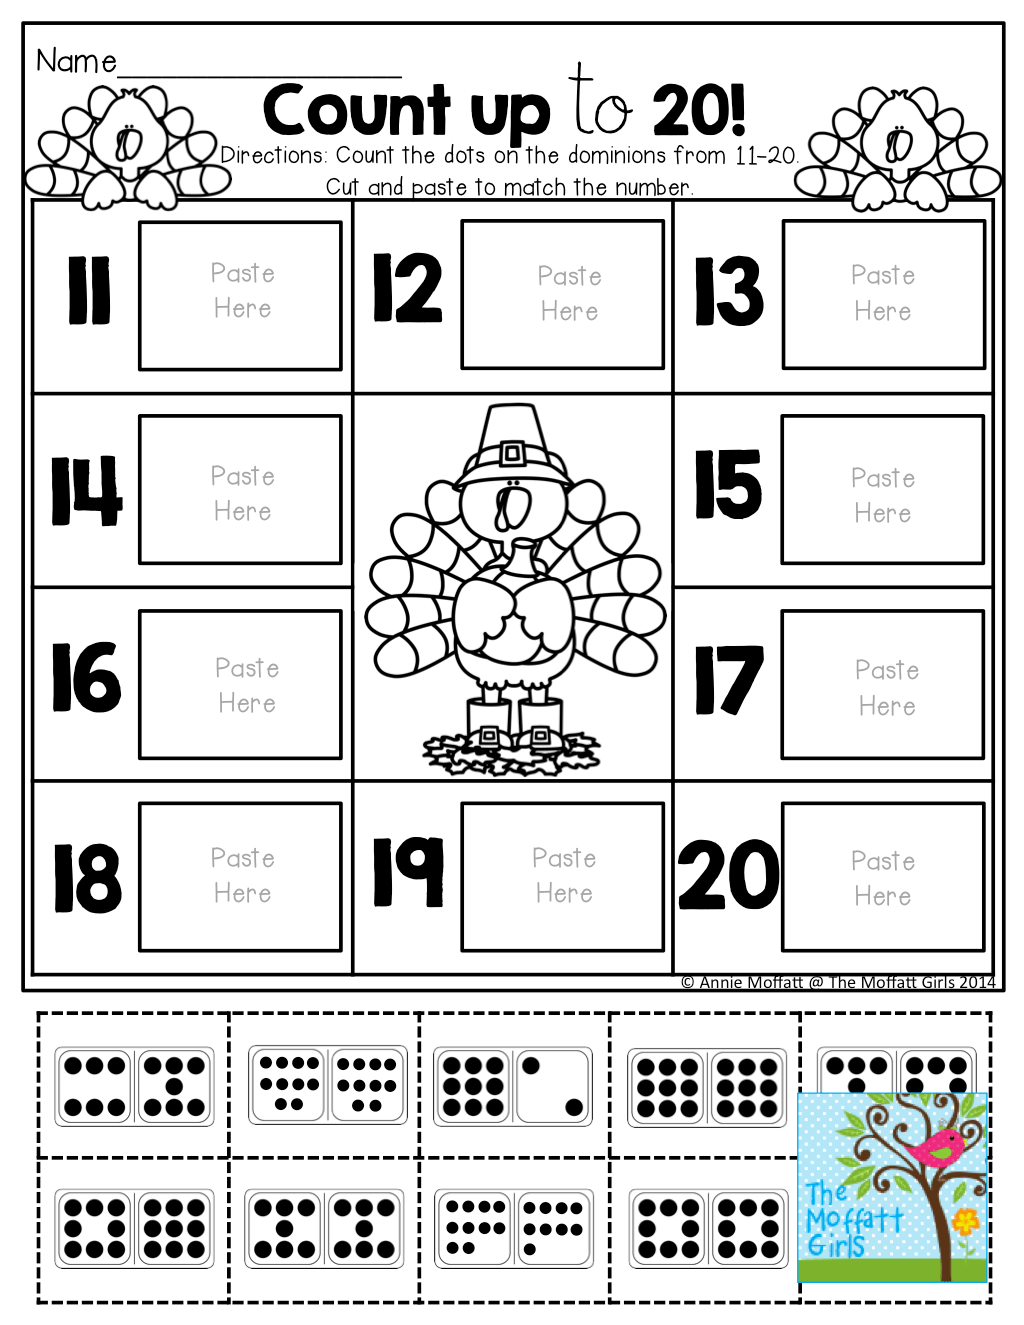 Count Up To 20 Cut And Paste The Set That Matches Each Number Tons Of Great Printables